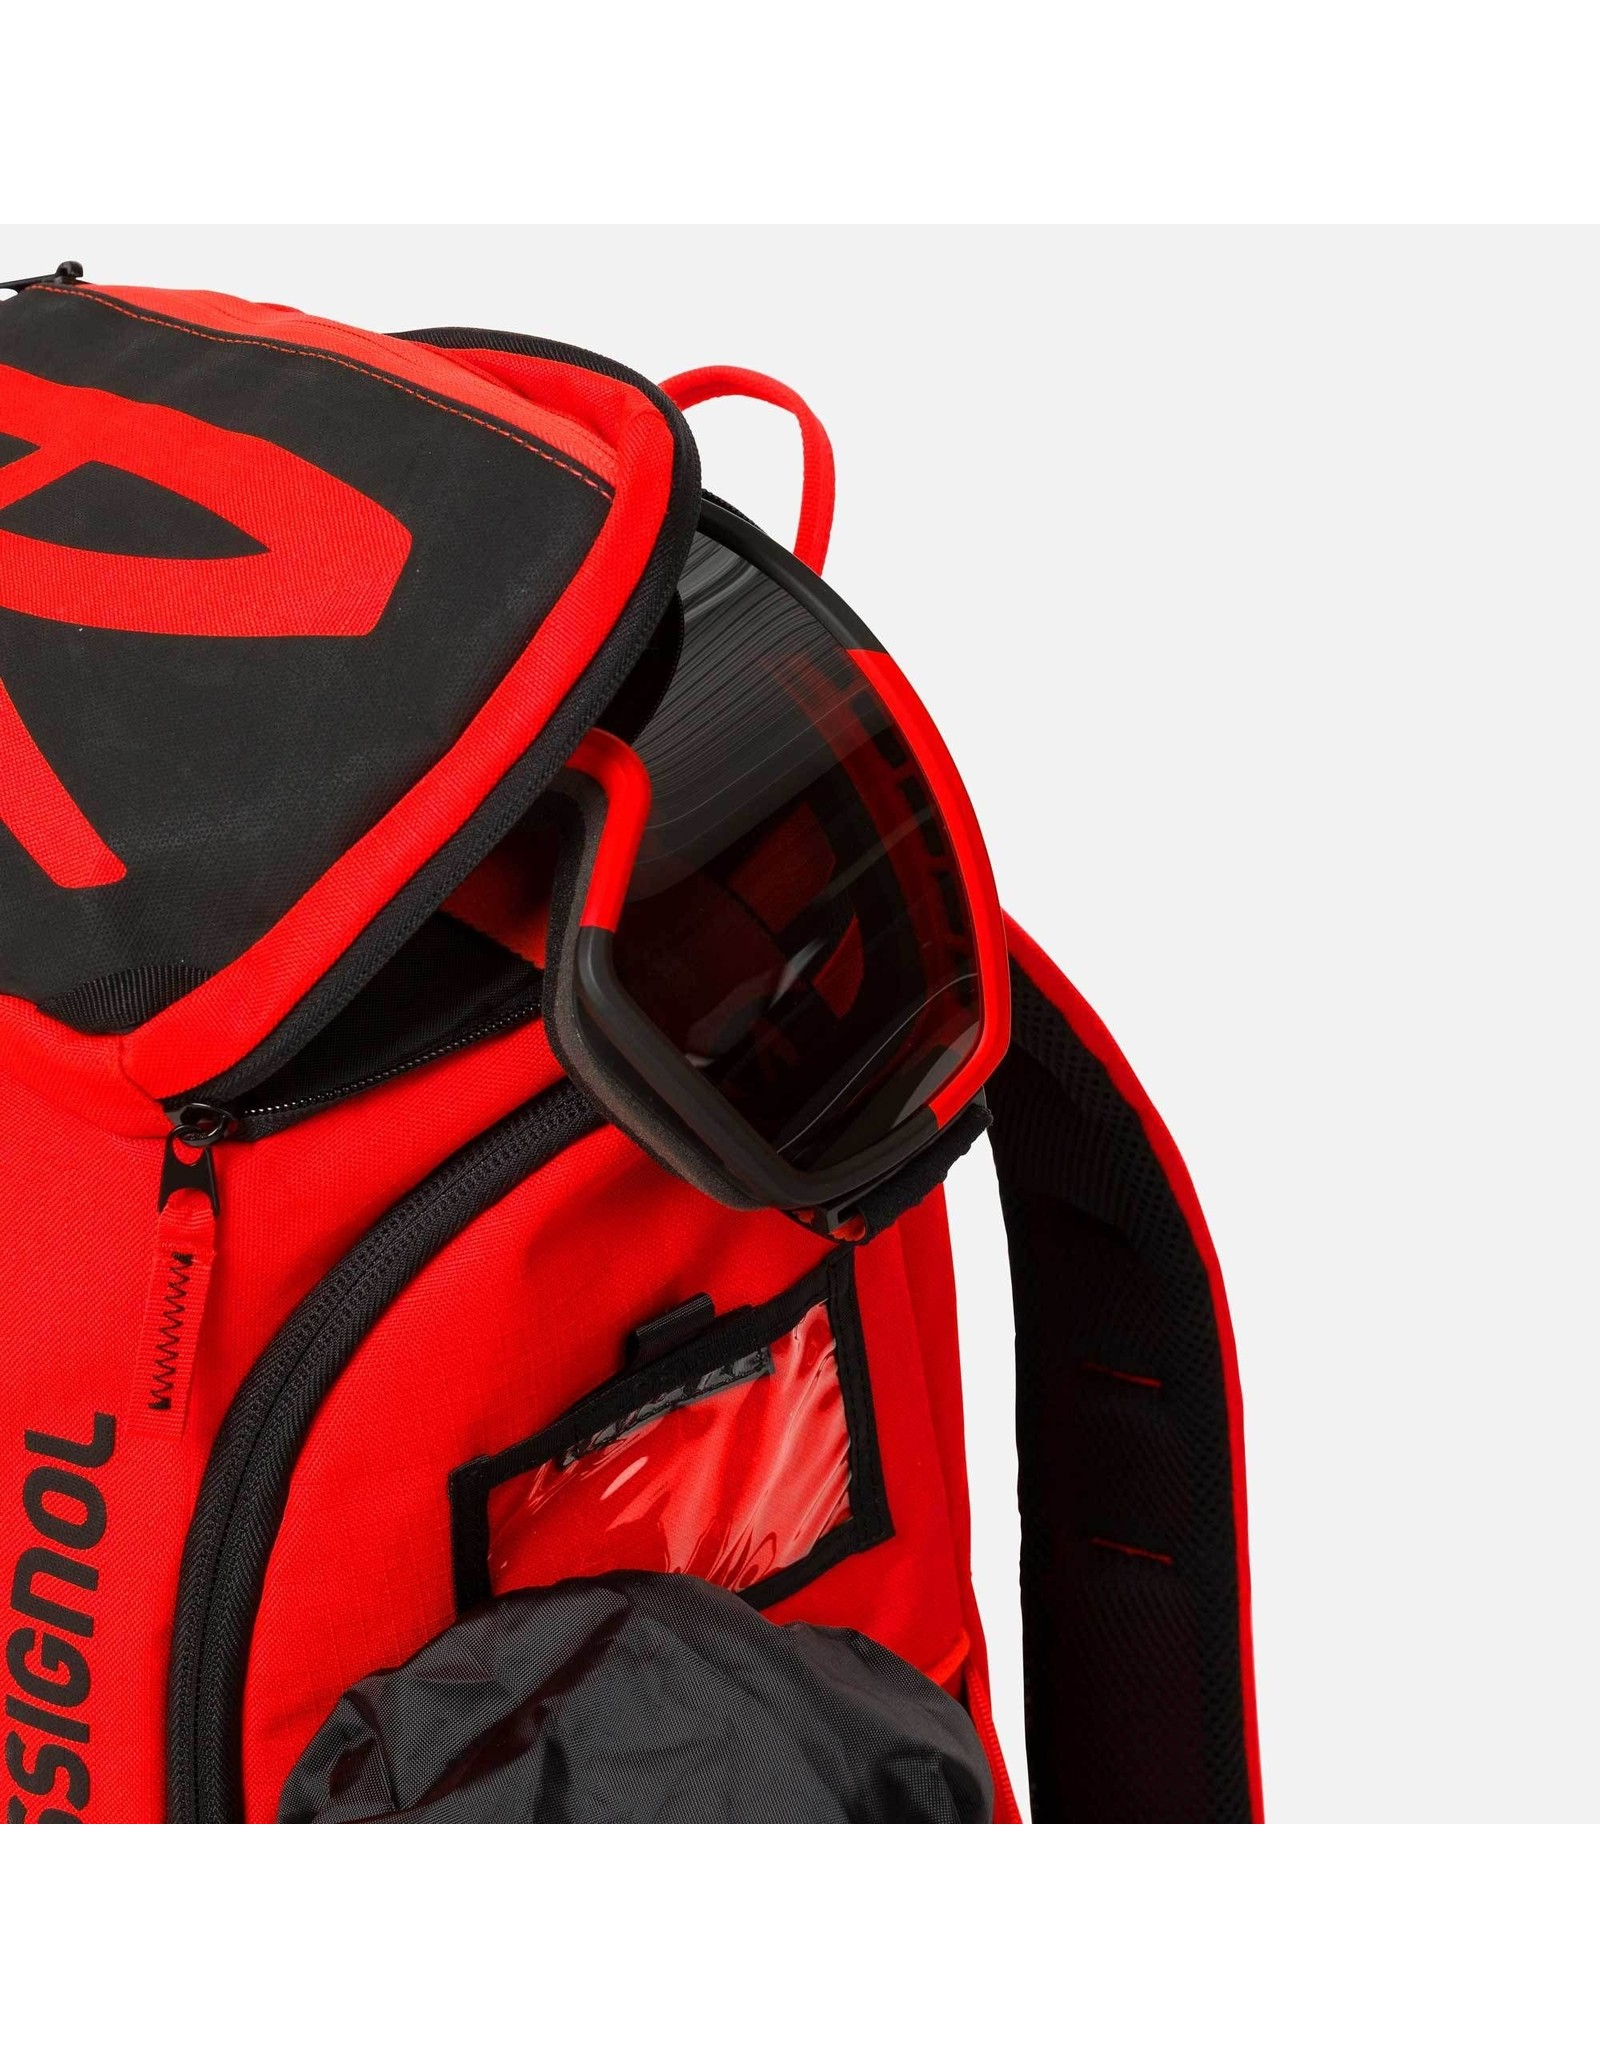 ROSSIGNOL ROSSIGNOL HERO BOOT PACK 20